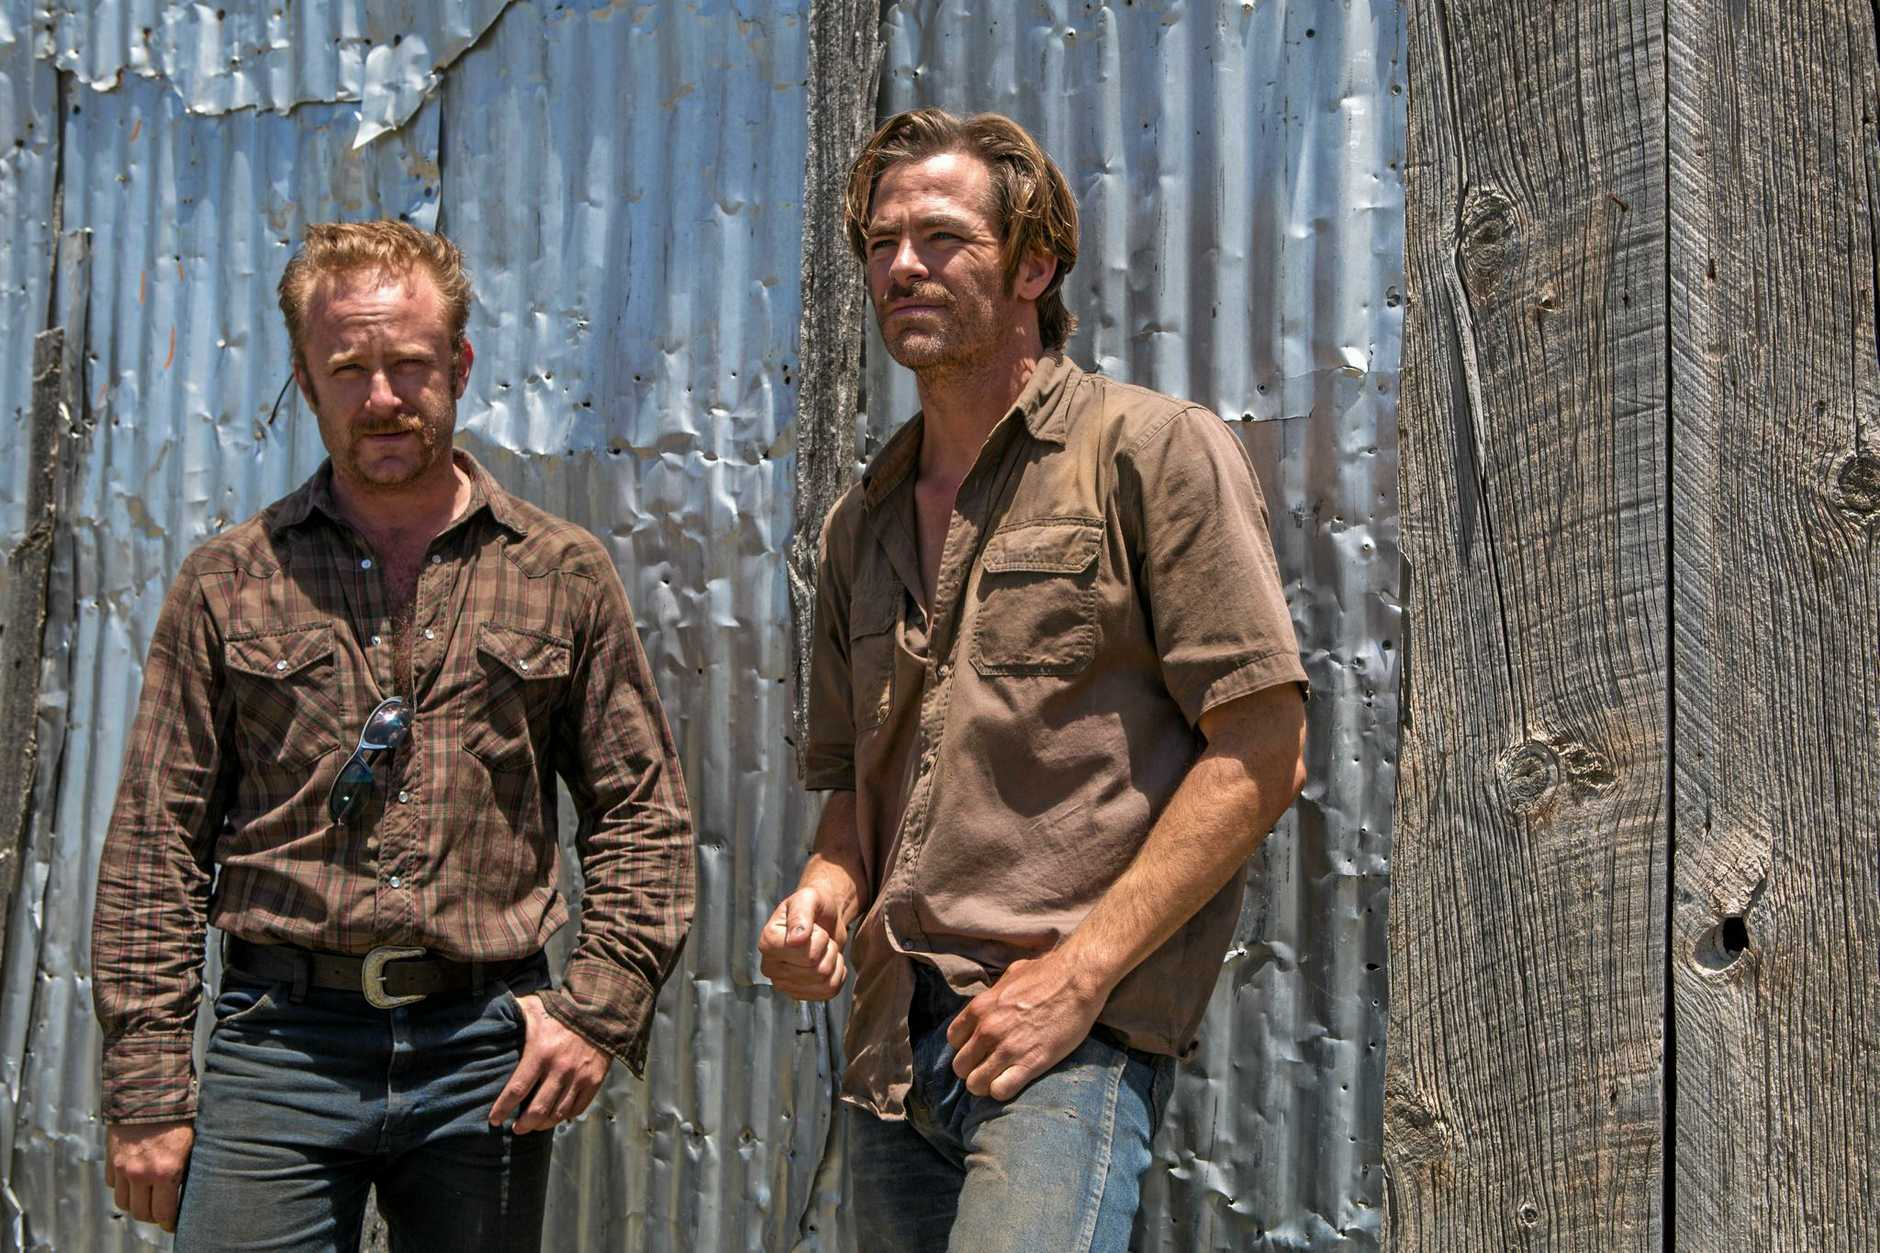 Ben Foster and Chris Pine in a scene from the movie Hell or High Water.